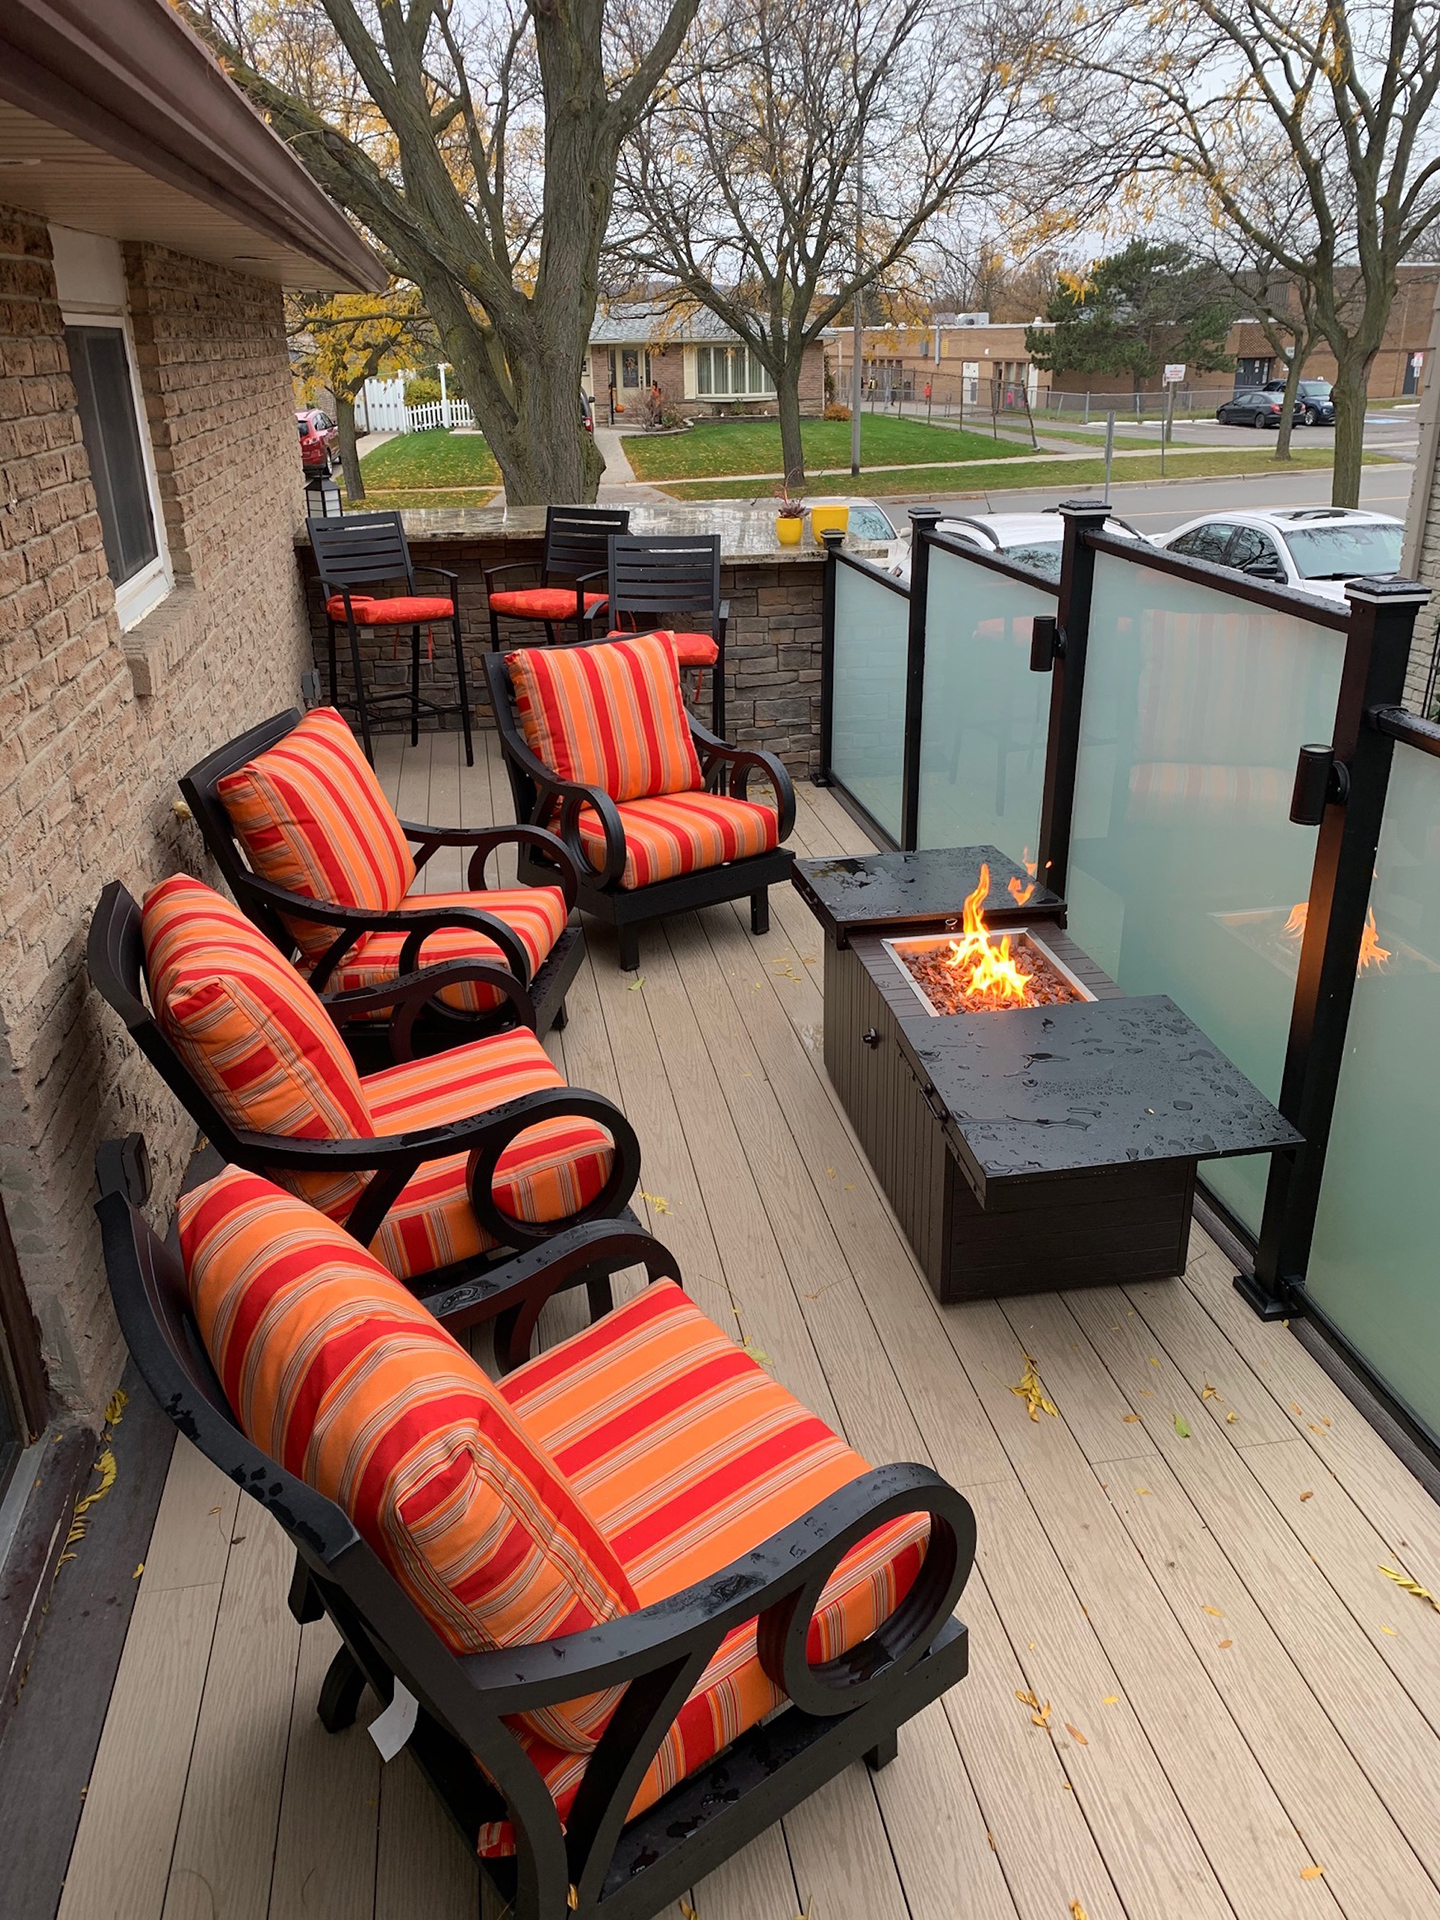 The Most Durable Deck Materials In Canada - TIVADEK